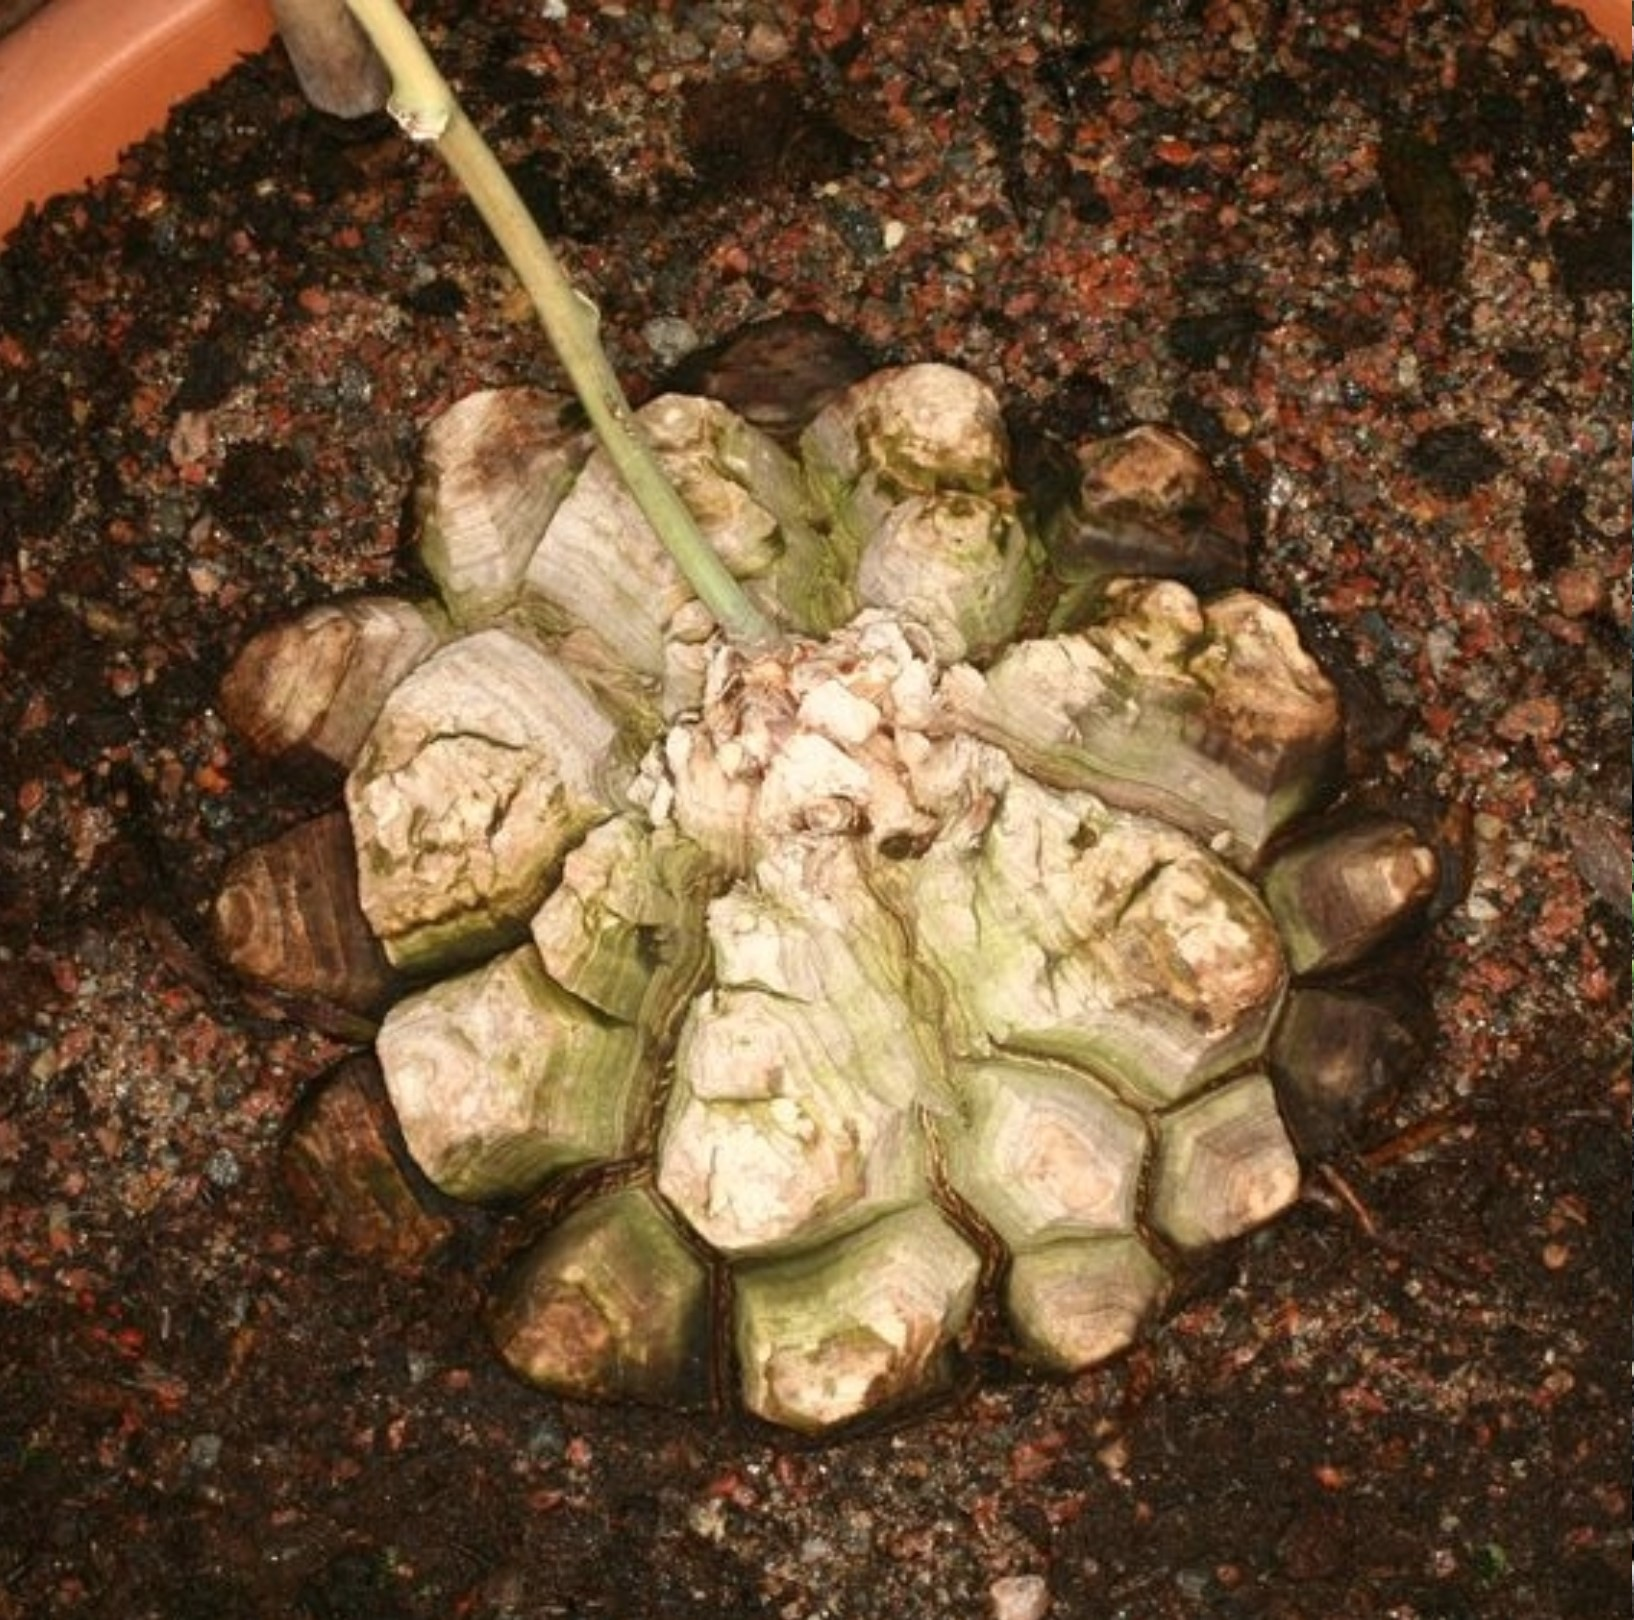 Dioscorea mexicana with thick, woody outer layer divided up into polygons